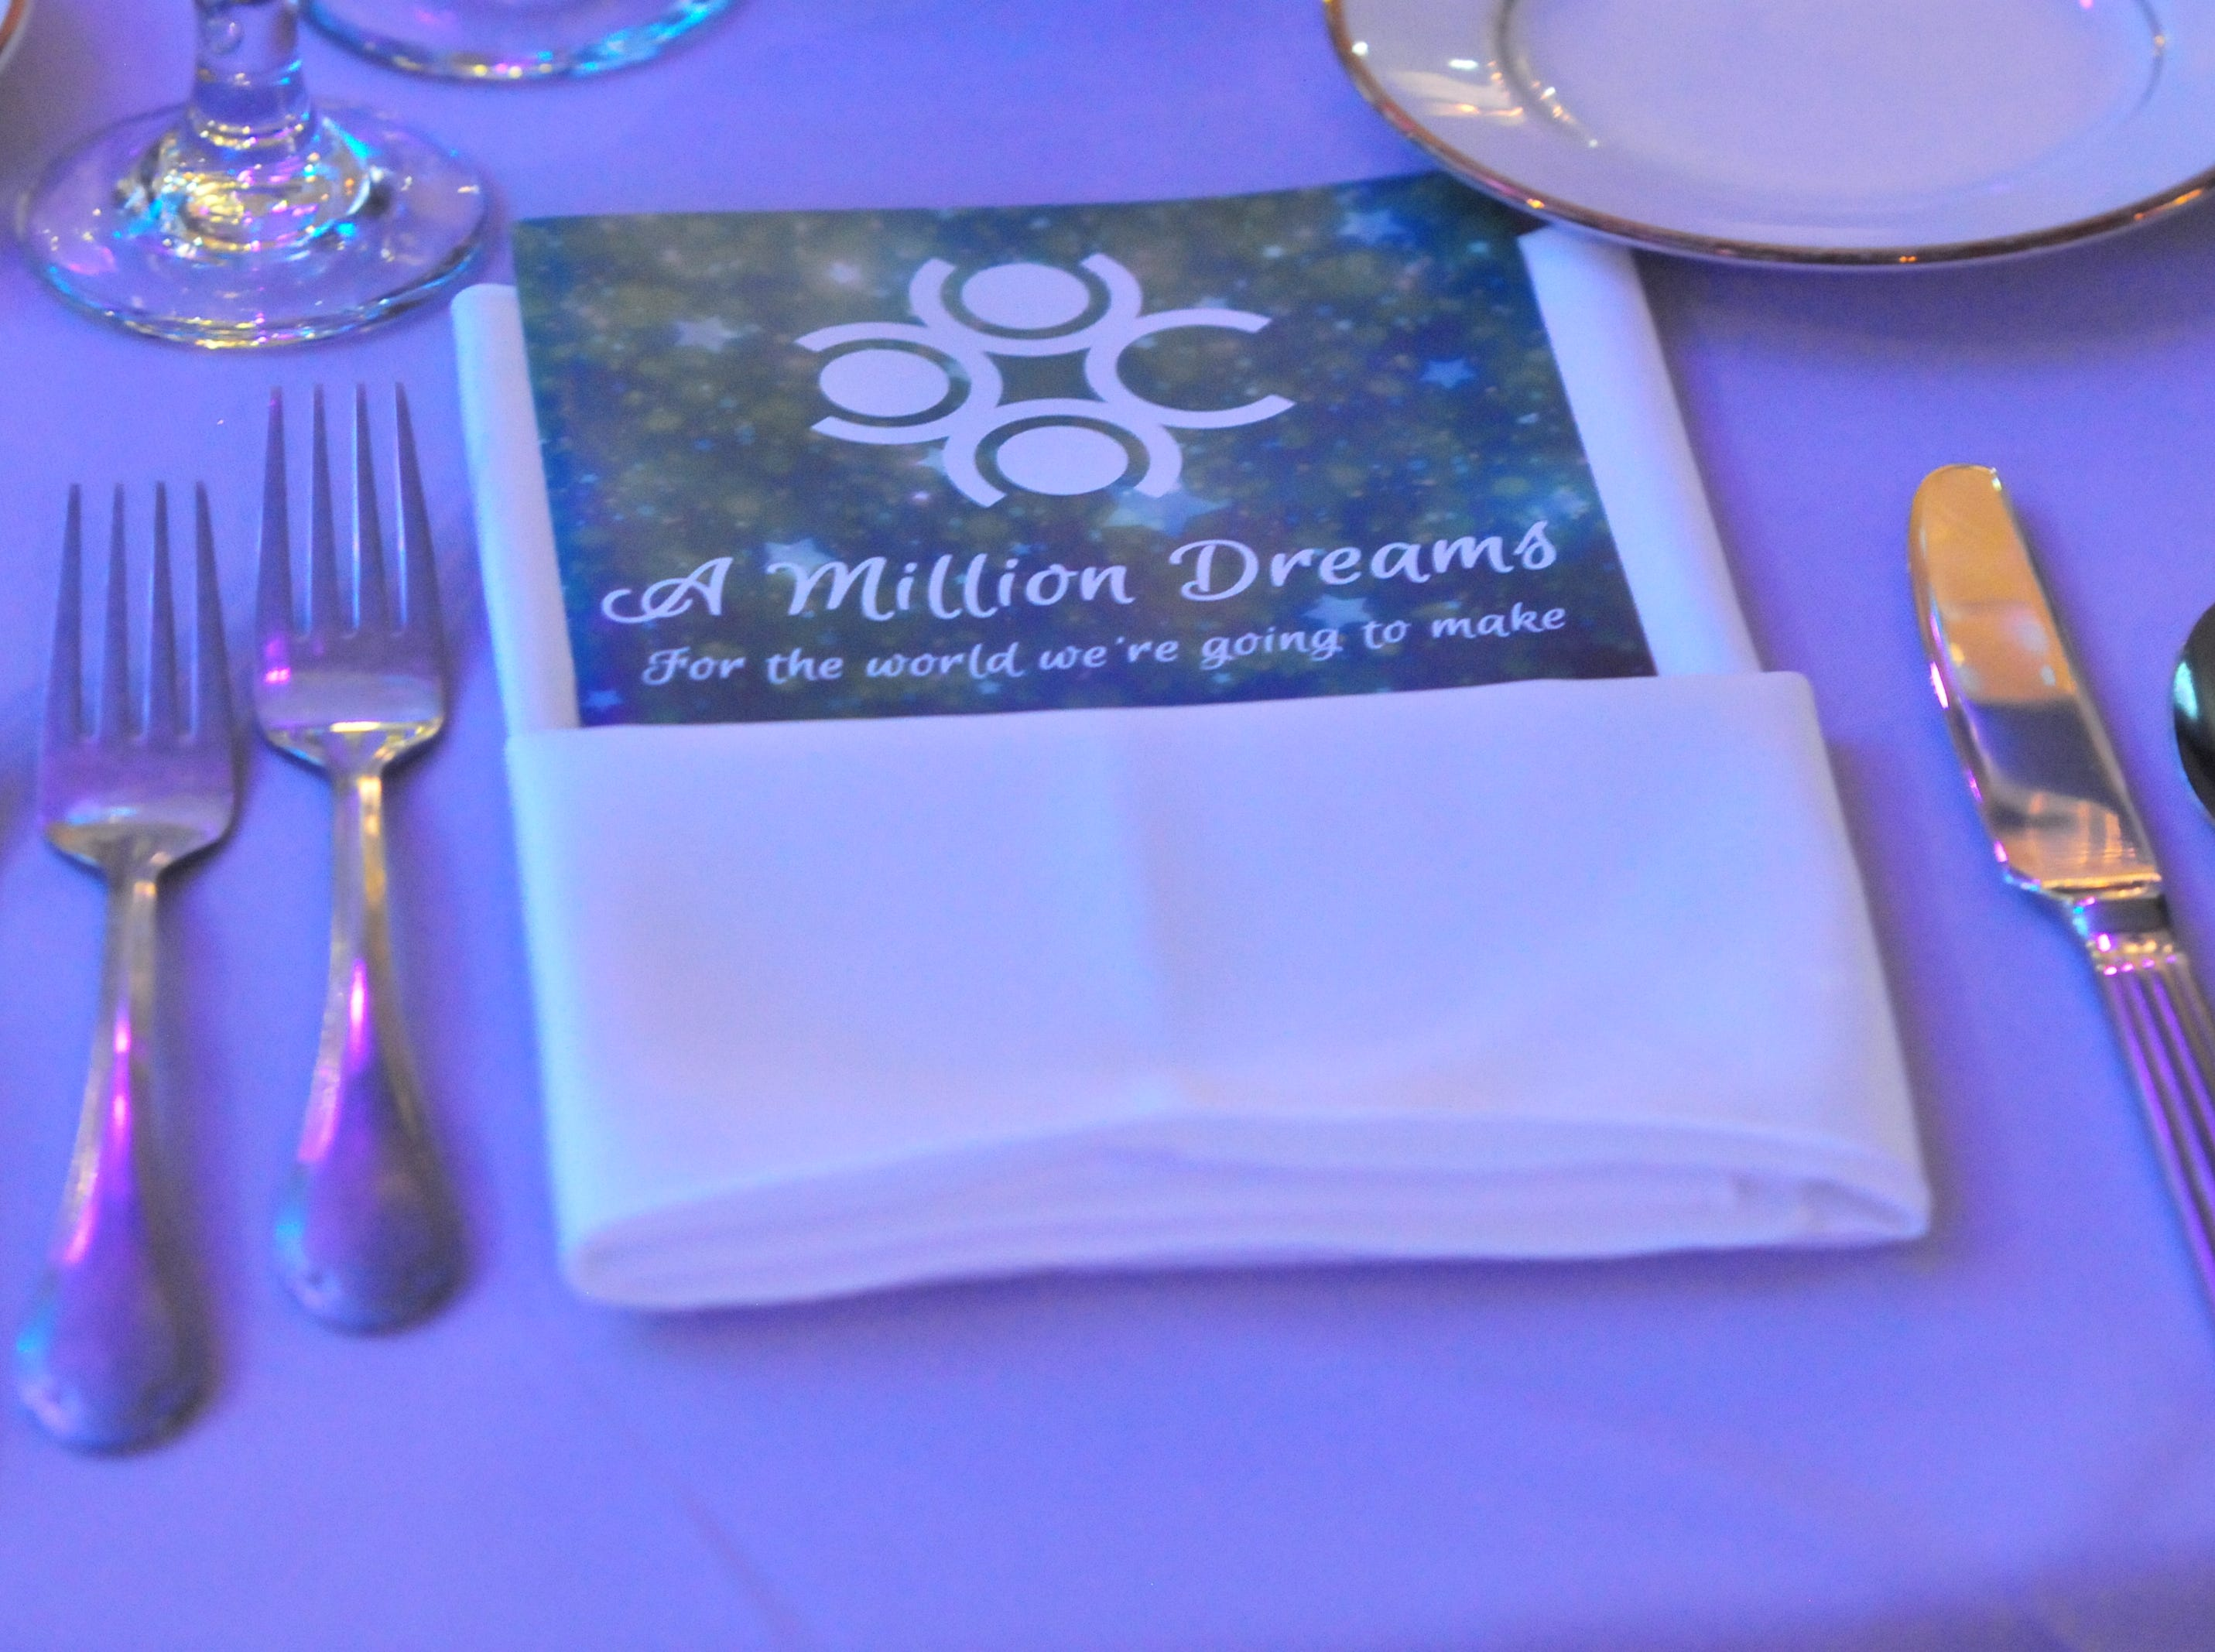 """The Wayne County Area Chamber of Commerce celebrated Friday night with its """"A Million Dreams"""" dinner inside Kuhlman Center at the Wayne County Fairgrounds."""